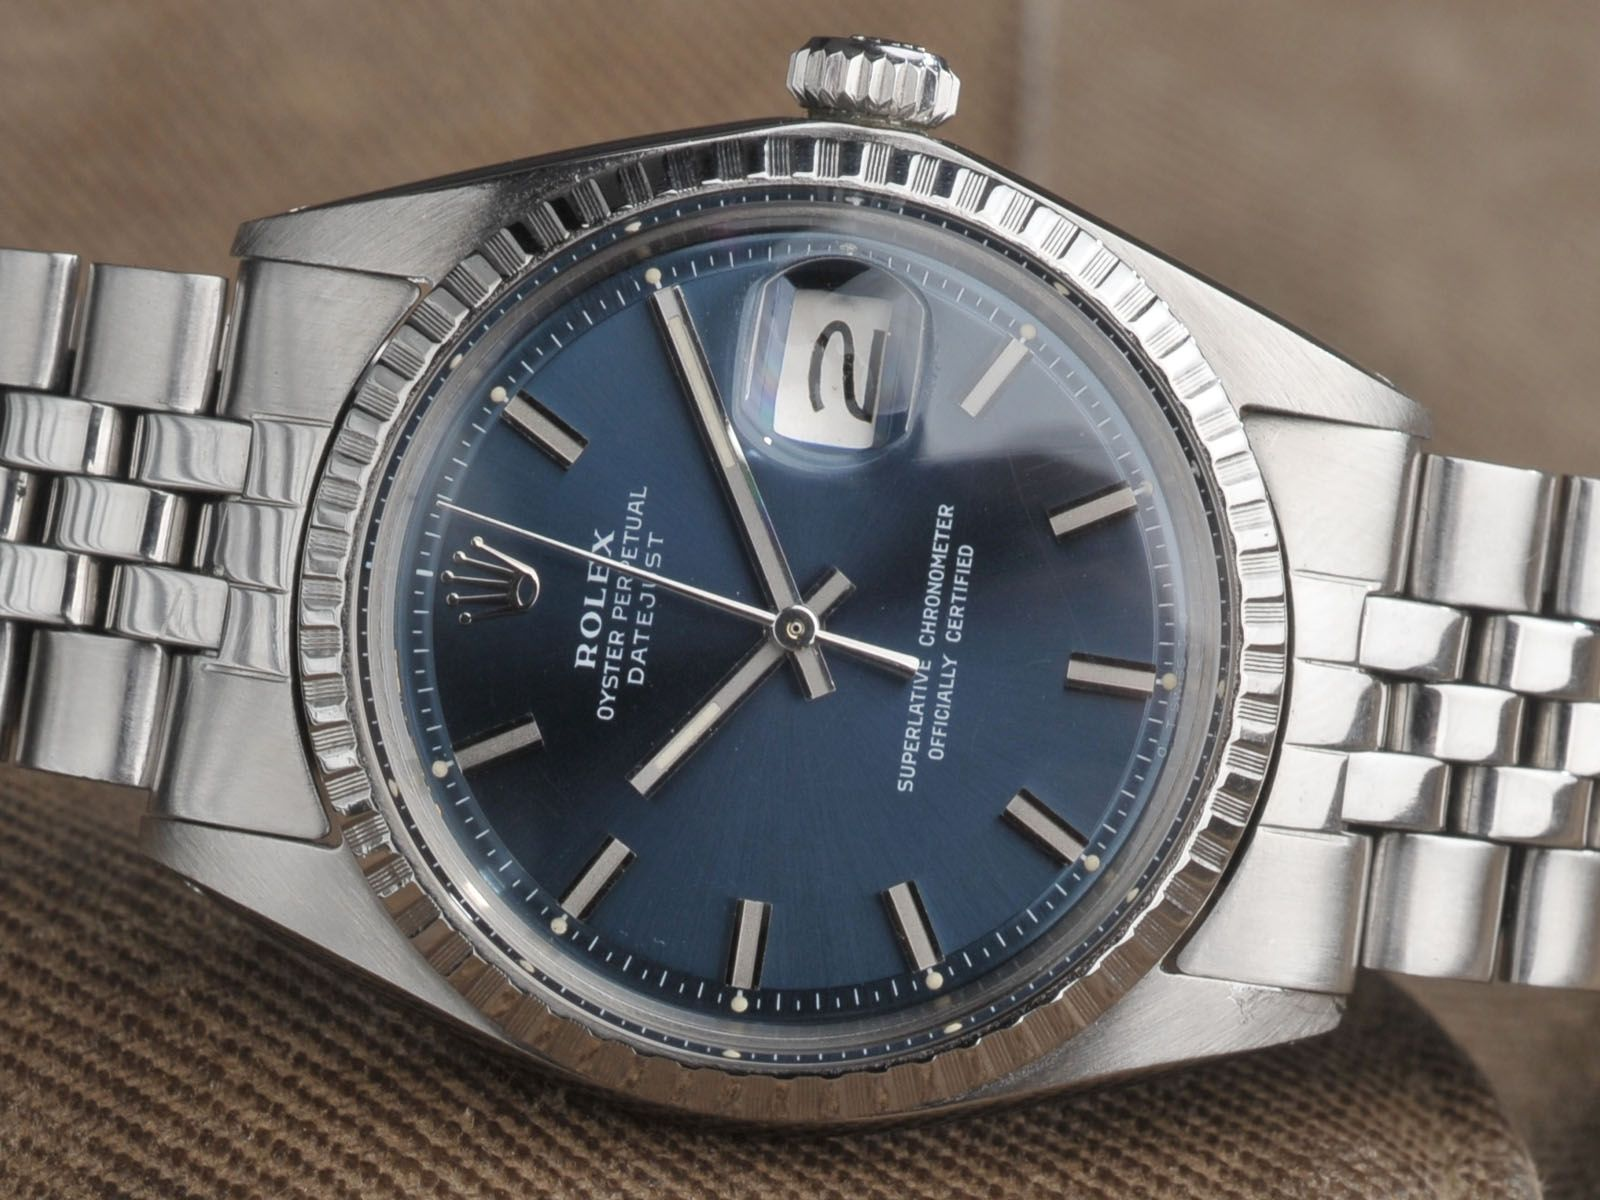 e0d067f82fd An Amazing vintage Rolex 1603 Datejust with blue Sigma dial and wide body  indexes. Great condition and such a great mens style watch.